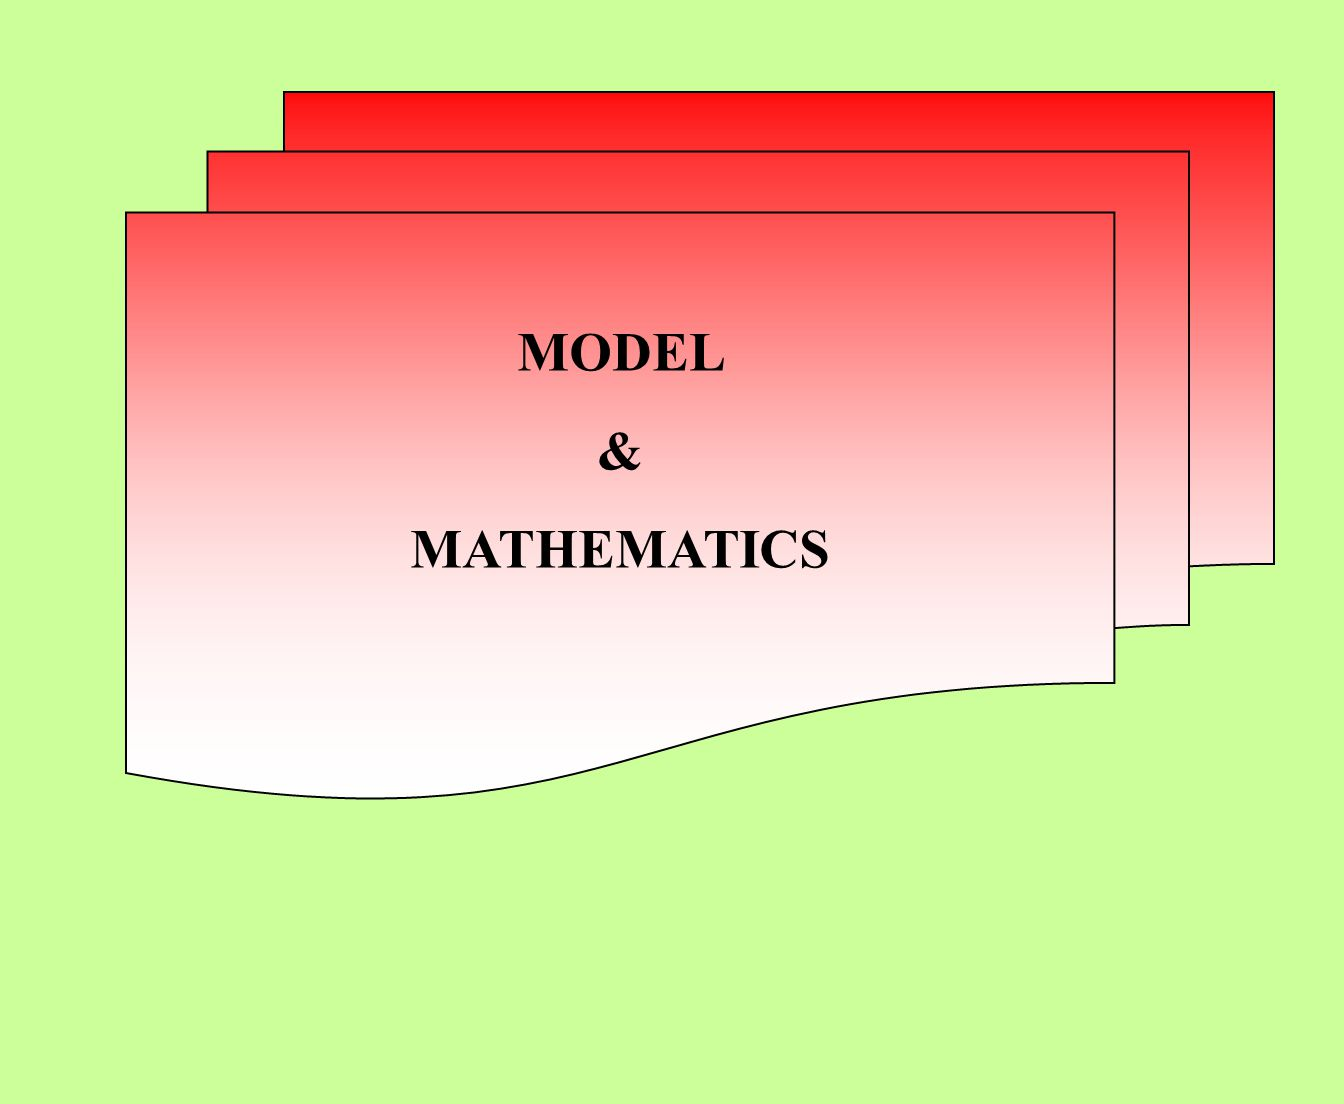 MODEL & MATHEMATICS